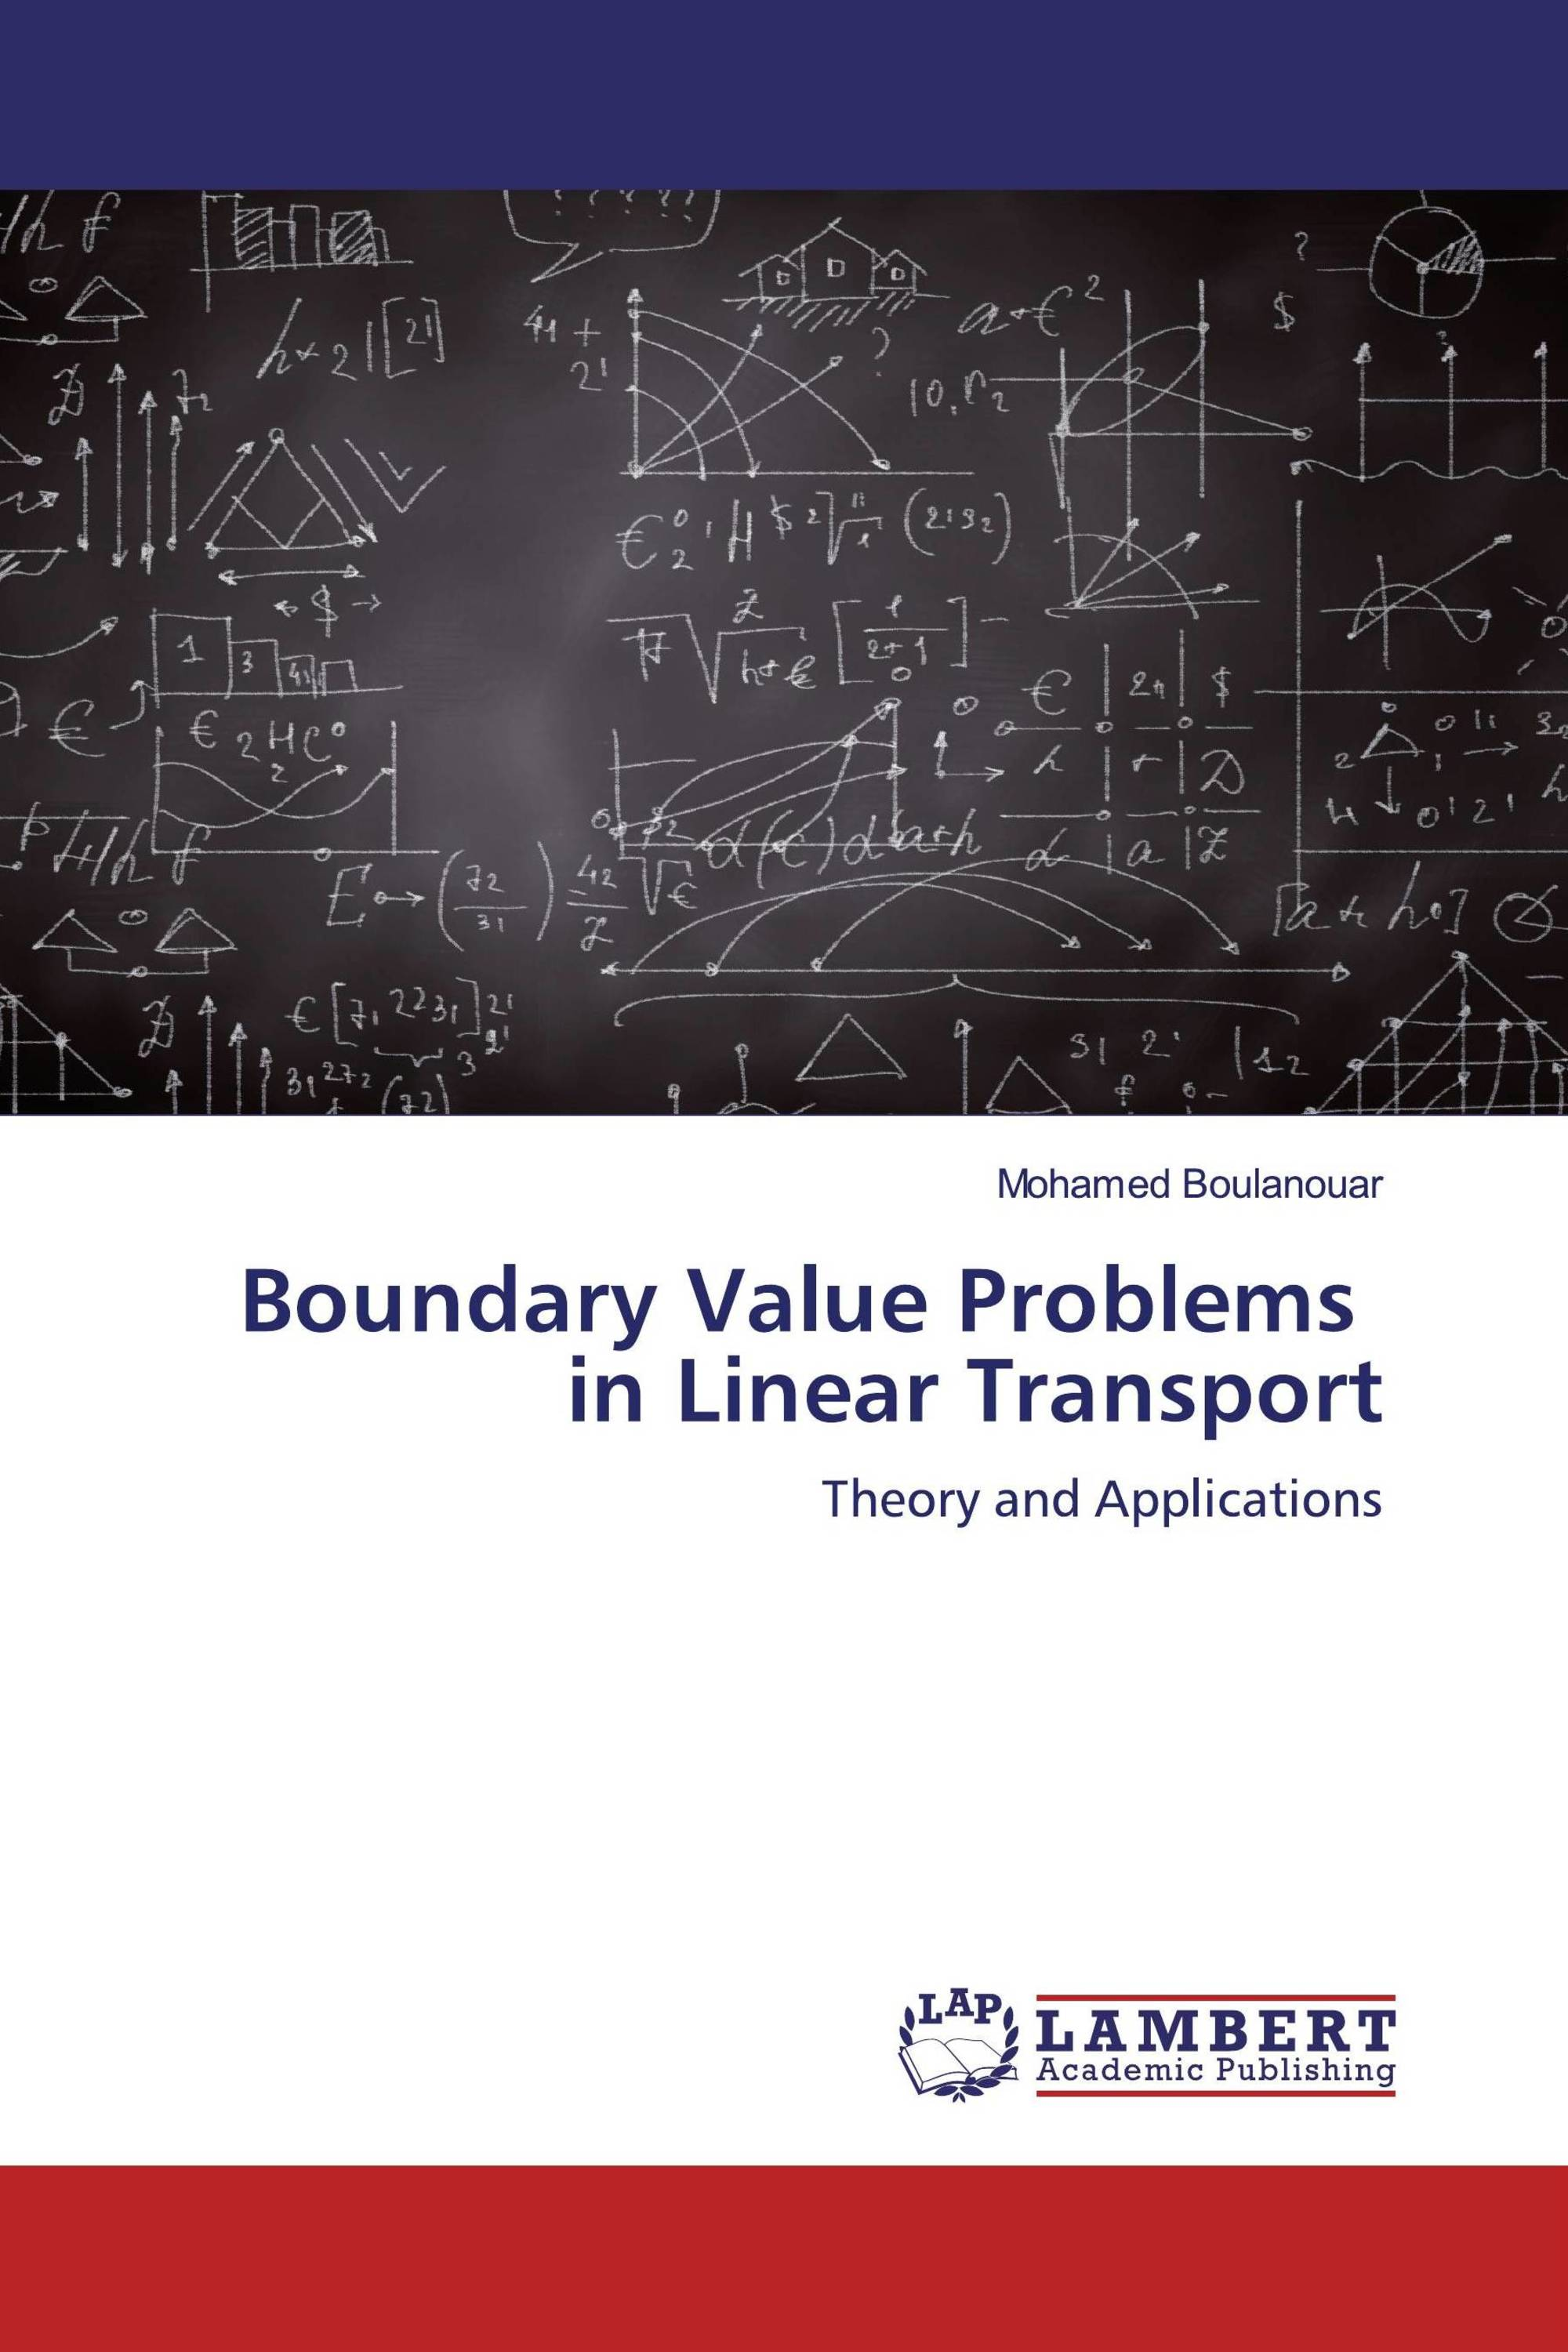 Boundary Value Problems in Linear Transport